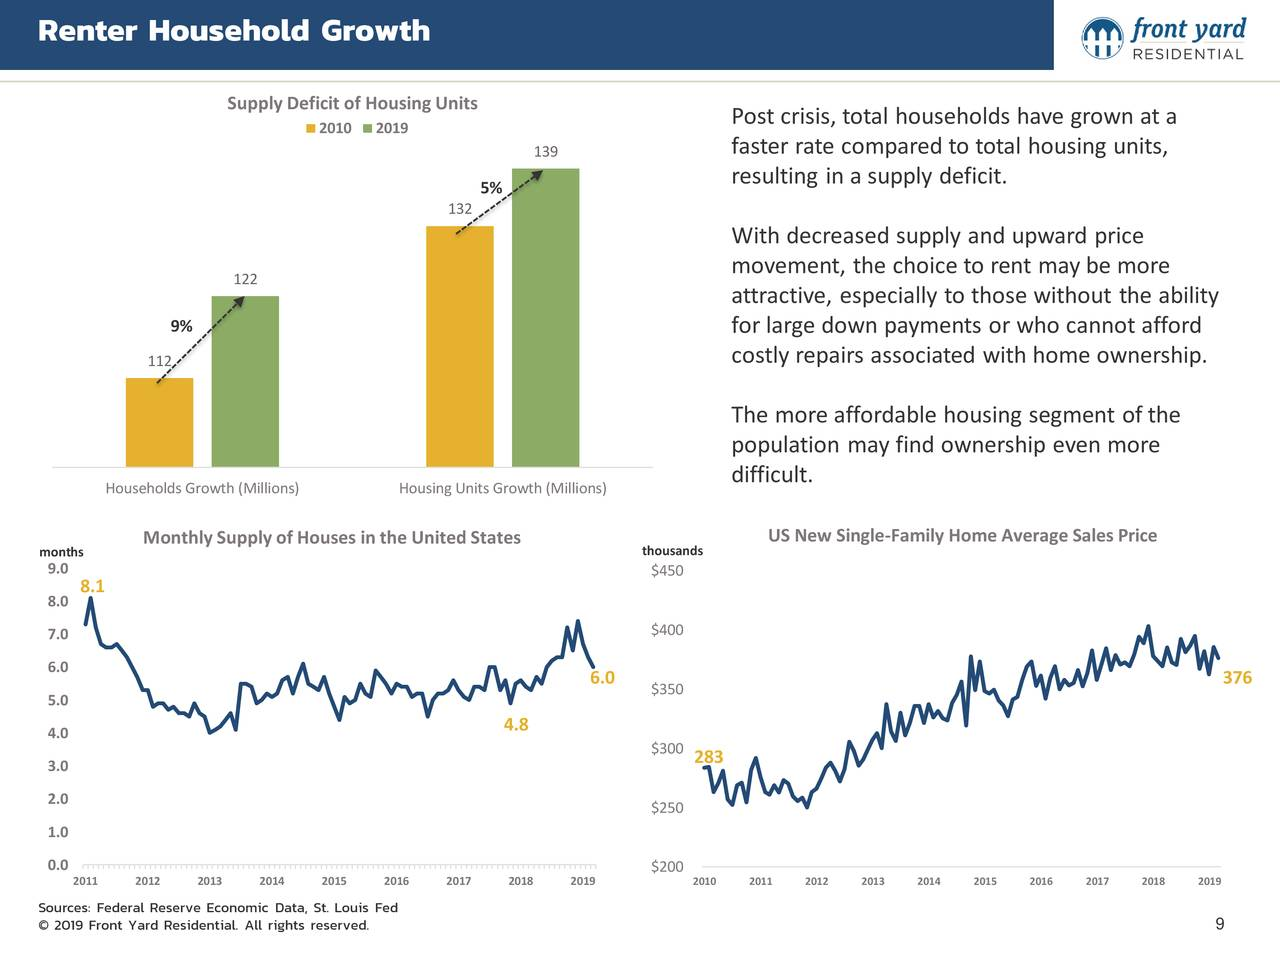 SupplyDeficit of HousingUnits 2010 2019 Post crisis, total households have grown at a faster rate compared to total housing units, 139 resulting in a supply deficit. 5% 132 With decreased supply and upward price 122 movement, the choice to rent may be more attractive, especially to those without the ability 9% for large down payments or who cannot afford costly repairs associated with home ownership. 112 The more affordable housing segment of the population may find ownership even more Households Growth (Millions) Housing Units Growth (Millions) difficult. MonthlySupplyof Houses in the UnitedStates US New Single-Family Home Average Sales Price months thousands 9.0 $450 8.1 8.0 7.0 $400 6.0 6.0 376 5.0 $350 4.0 4.8 $300 3.0 283 2.0 $250 1.0 0.0 2011 2012 2013 2014 2015 2016 2017 2018 2019 $200 2010 2011 2012 2013 2014 2015 2016 2017 2018 2019 Sources: Federal Reserve Economic Data, St. Louis Fed © 2019 Front Yard Residential. All rights reserved. 9